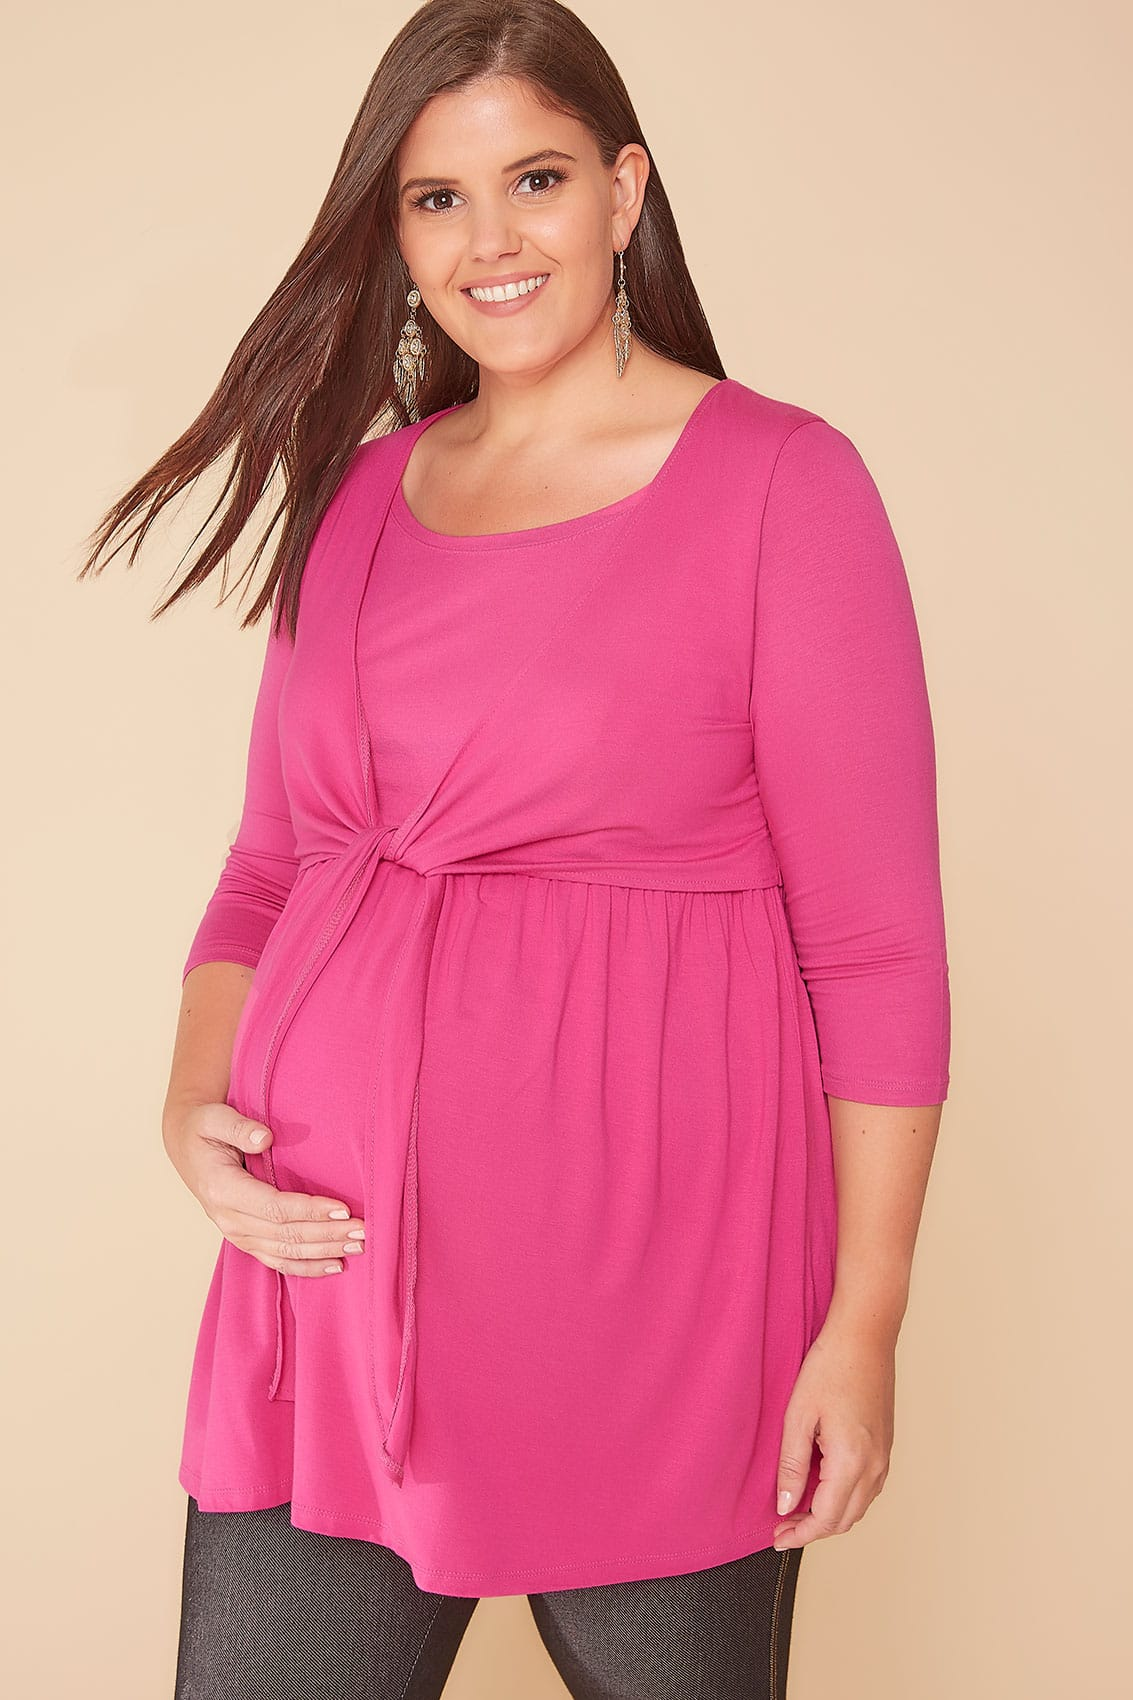 Bump It Up Maternity Hot Pink Overlay Nursing Top, Plus -6863